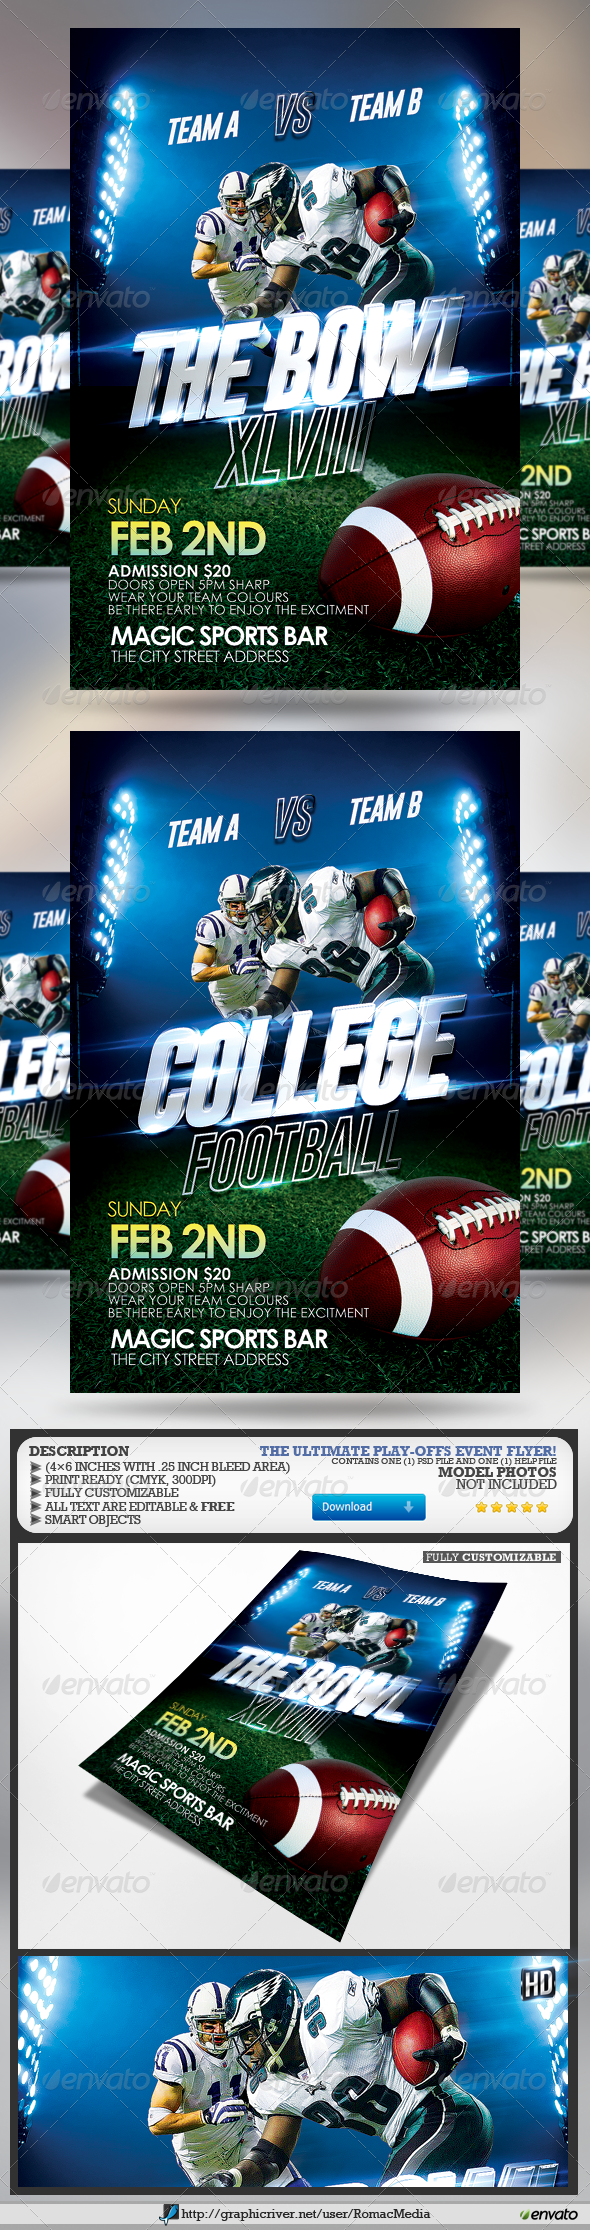 The Bowl and College Football Flyer - Sports Events